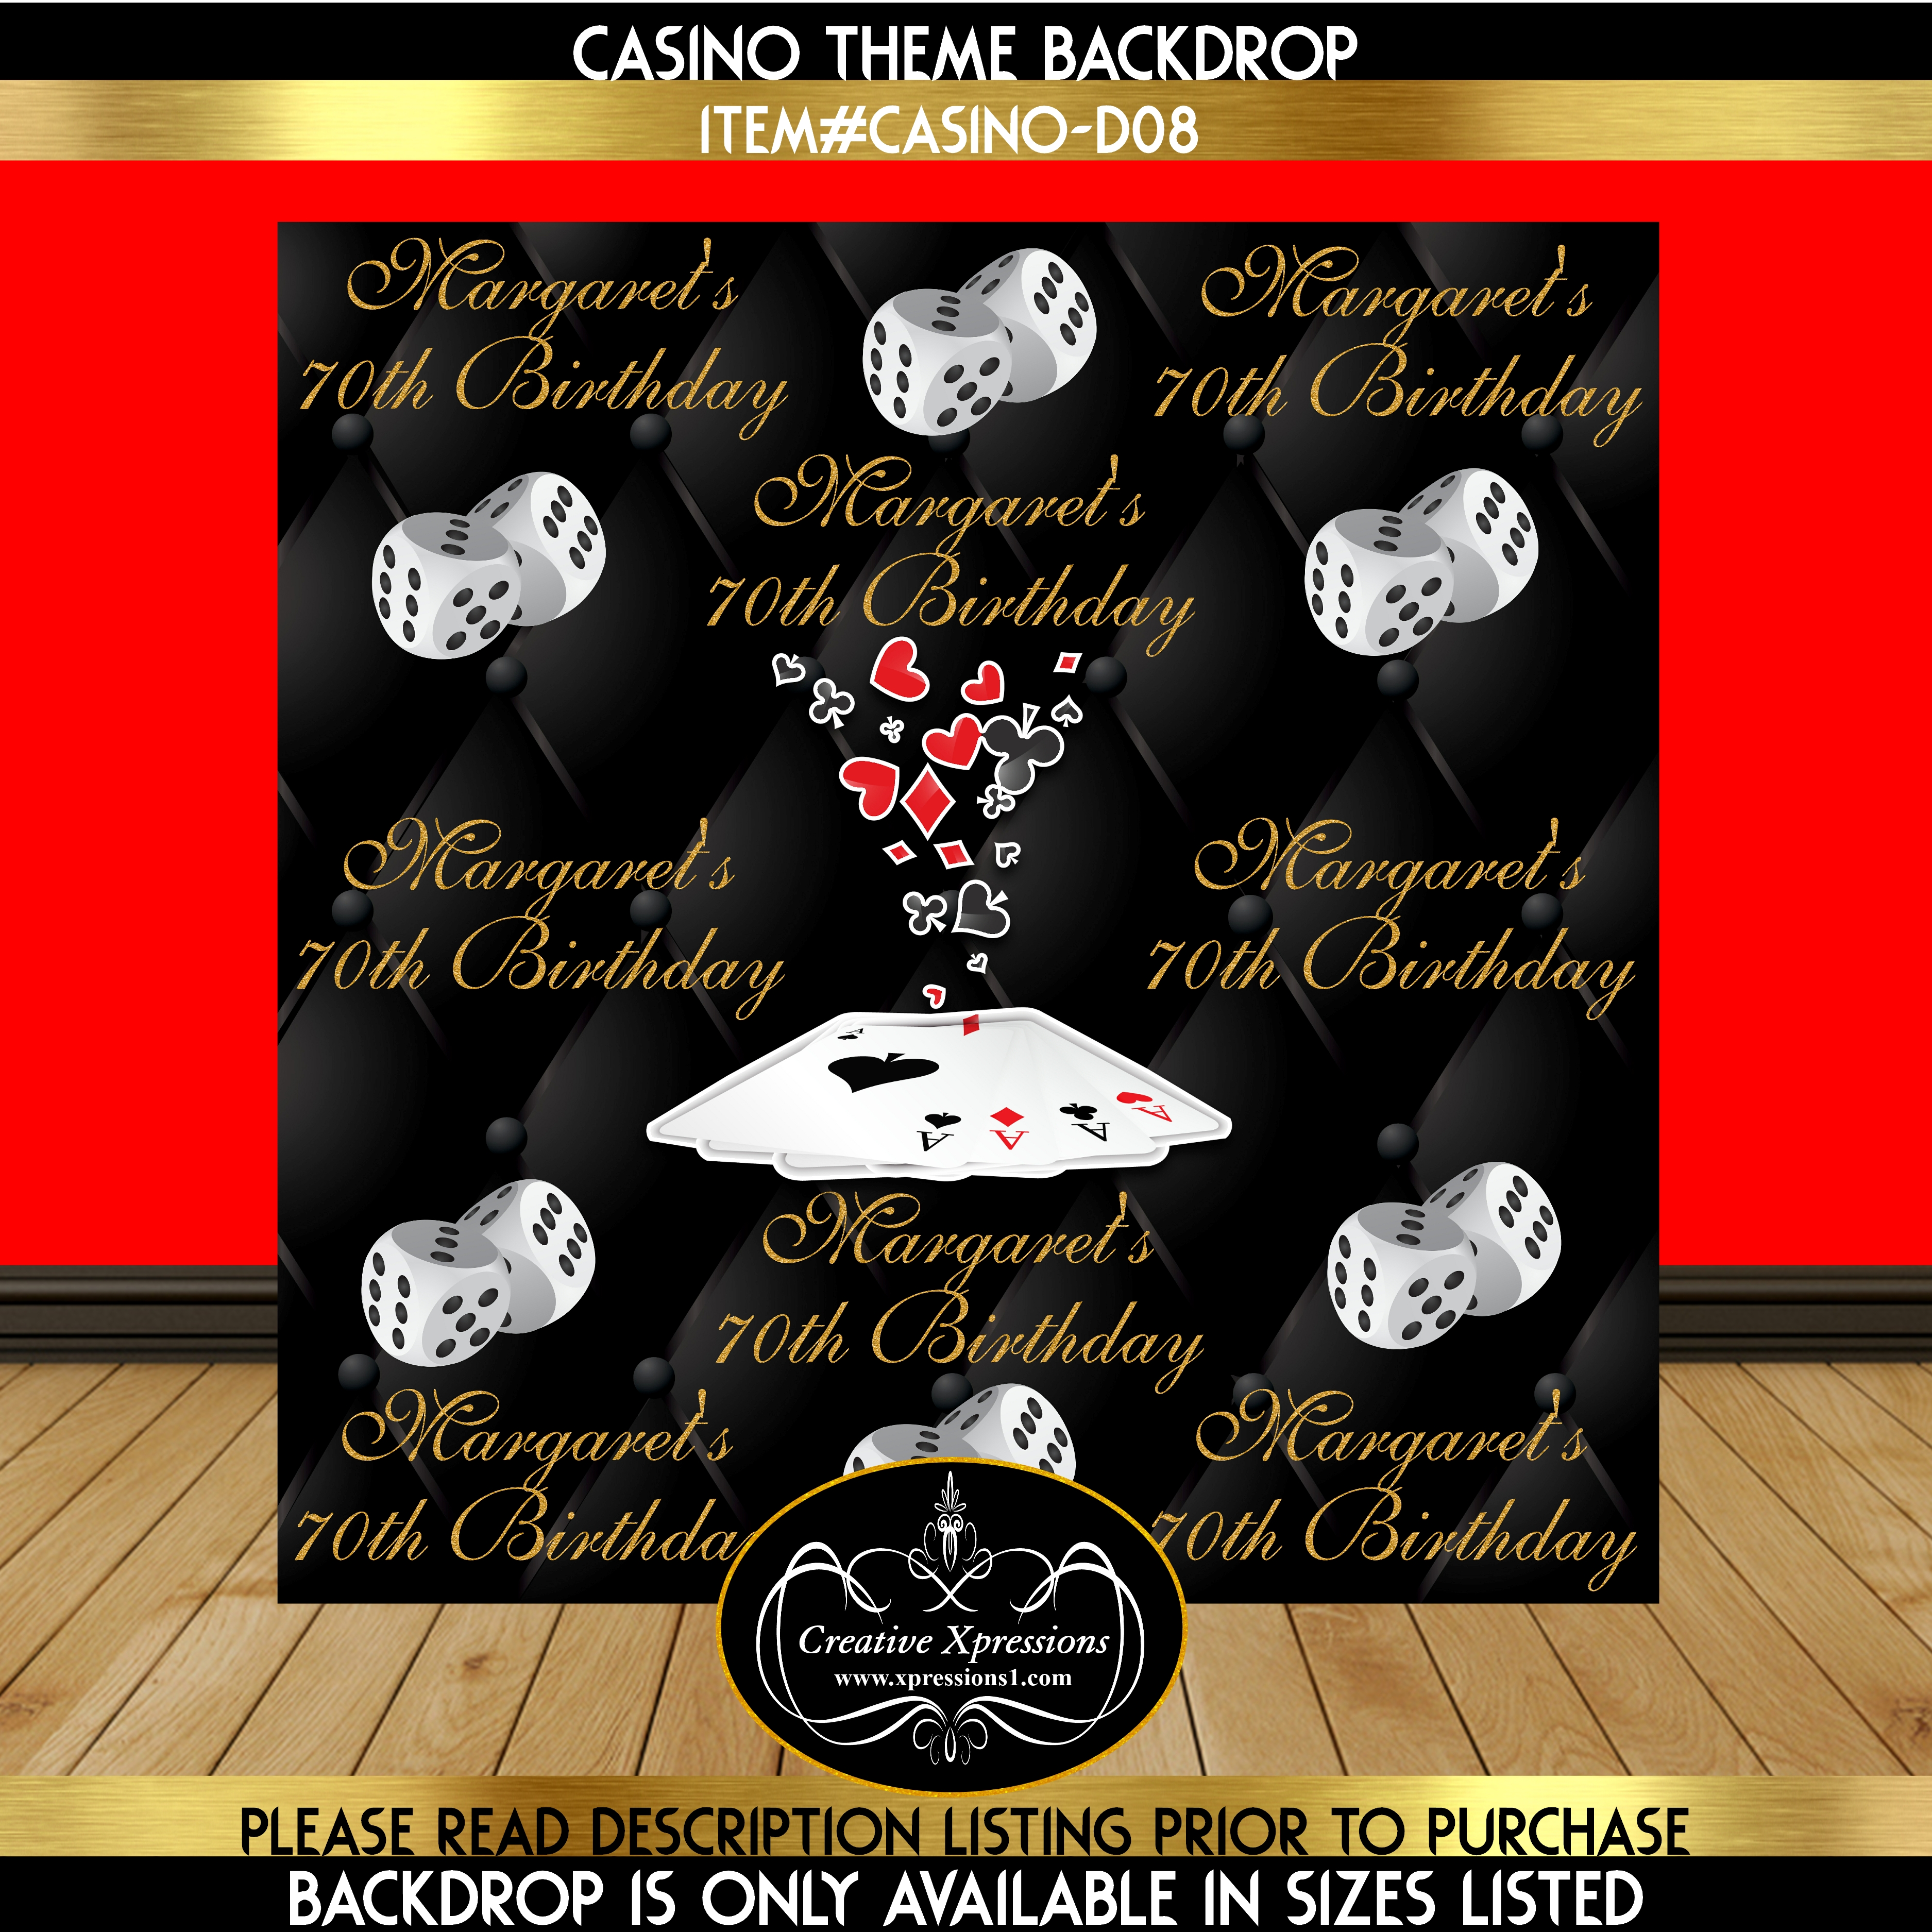 Flying Cards Casino Theme Backdrop